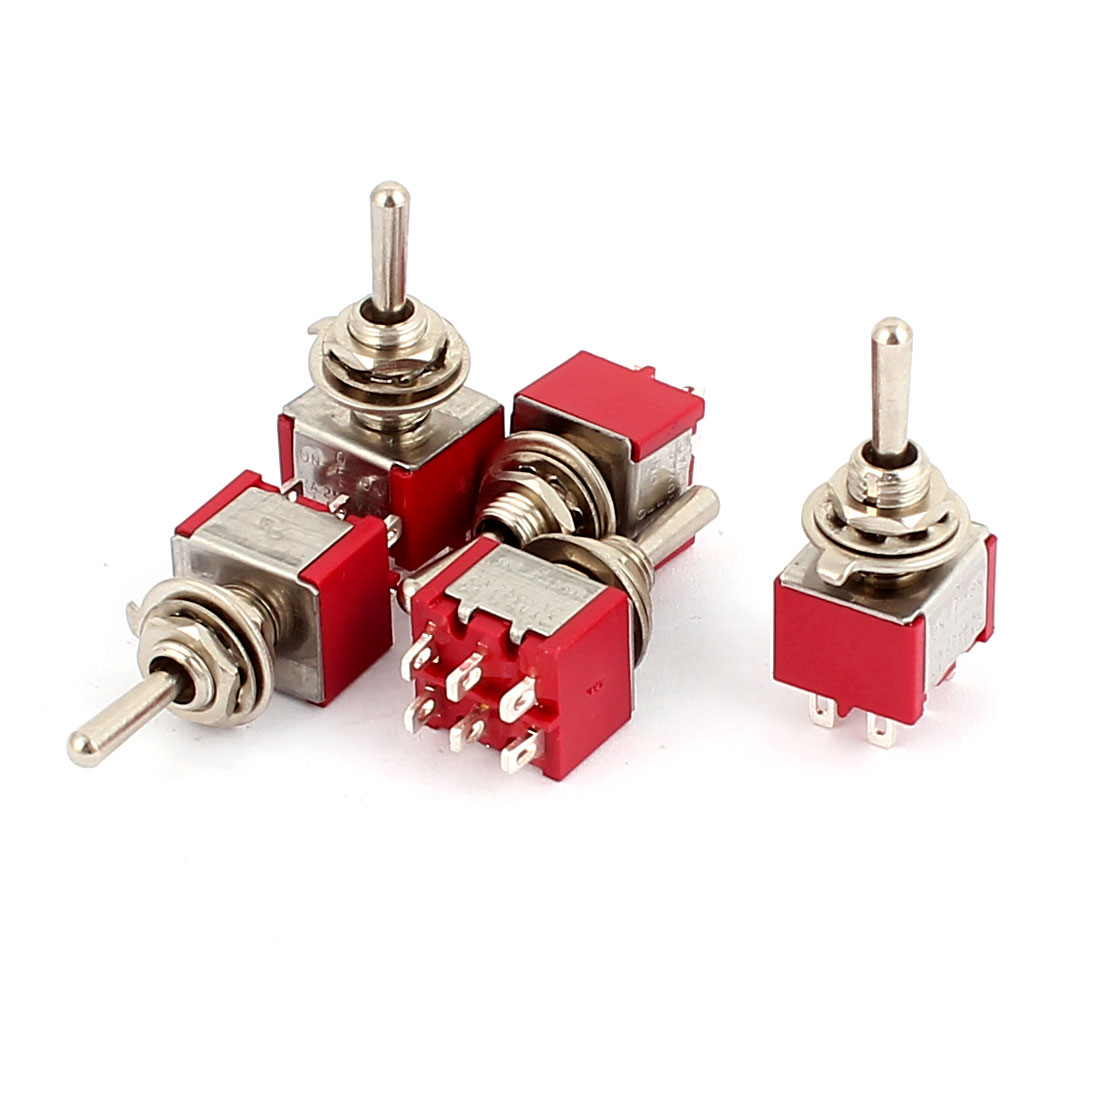 5 Pcs 250VAC 2A 120VAC 5A 6 Terminals DPDT 3 Position ON/OFF/ON Momentary Toggle Switch